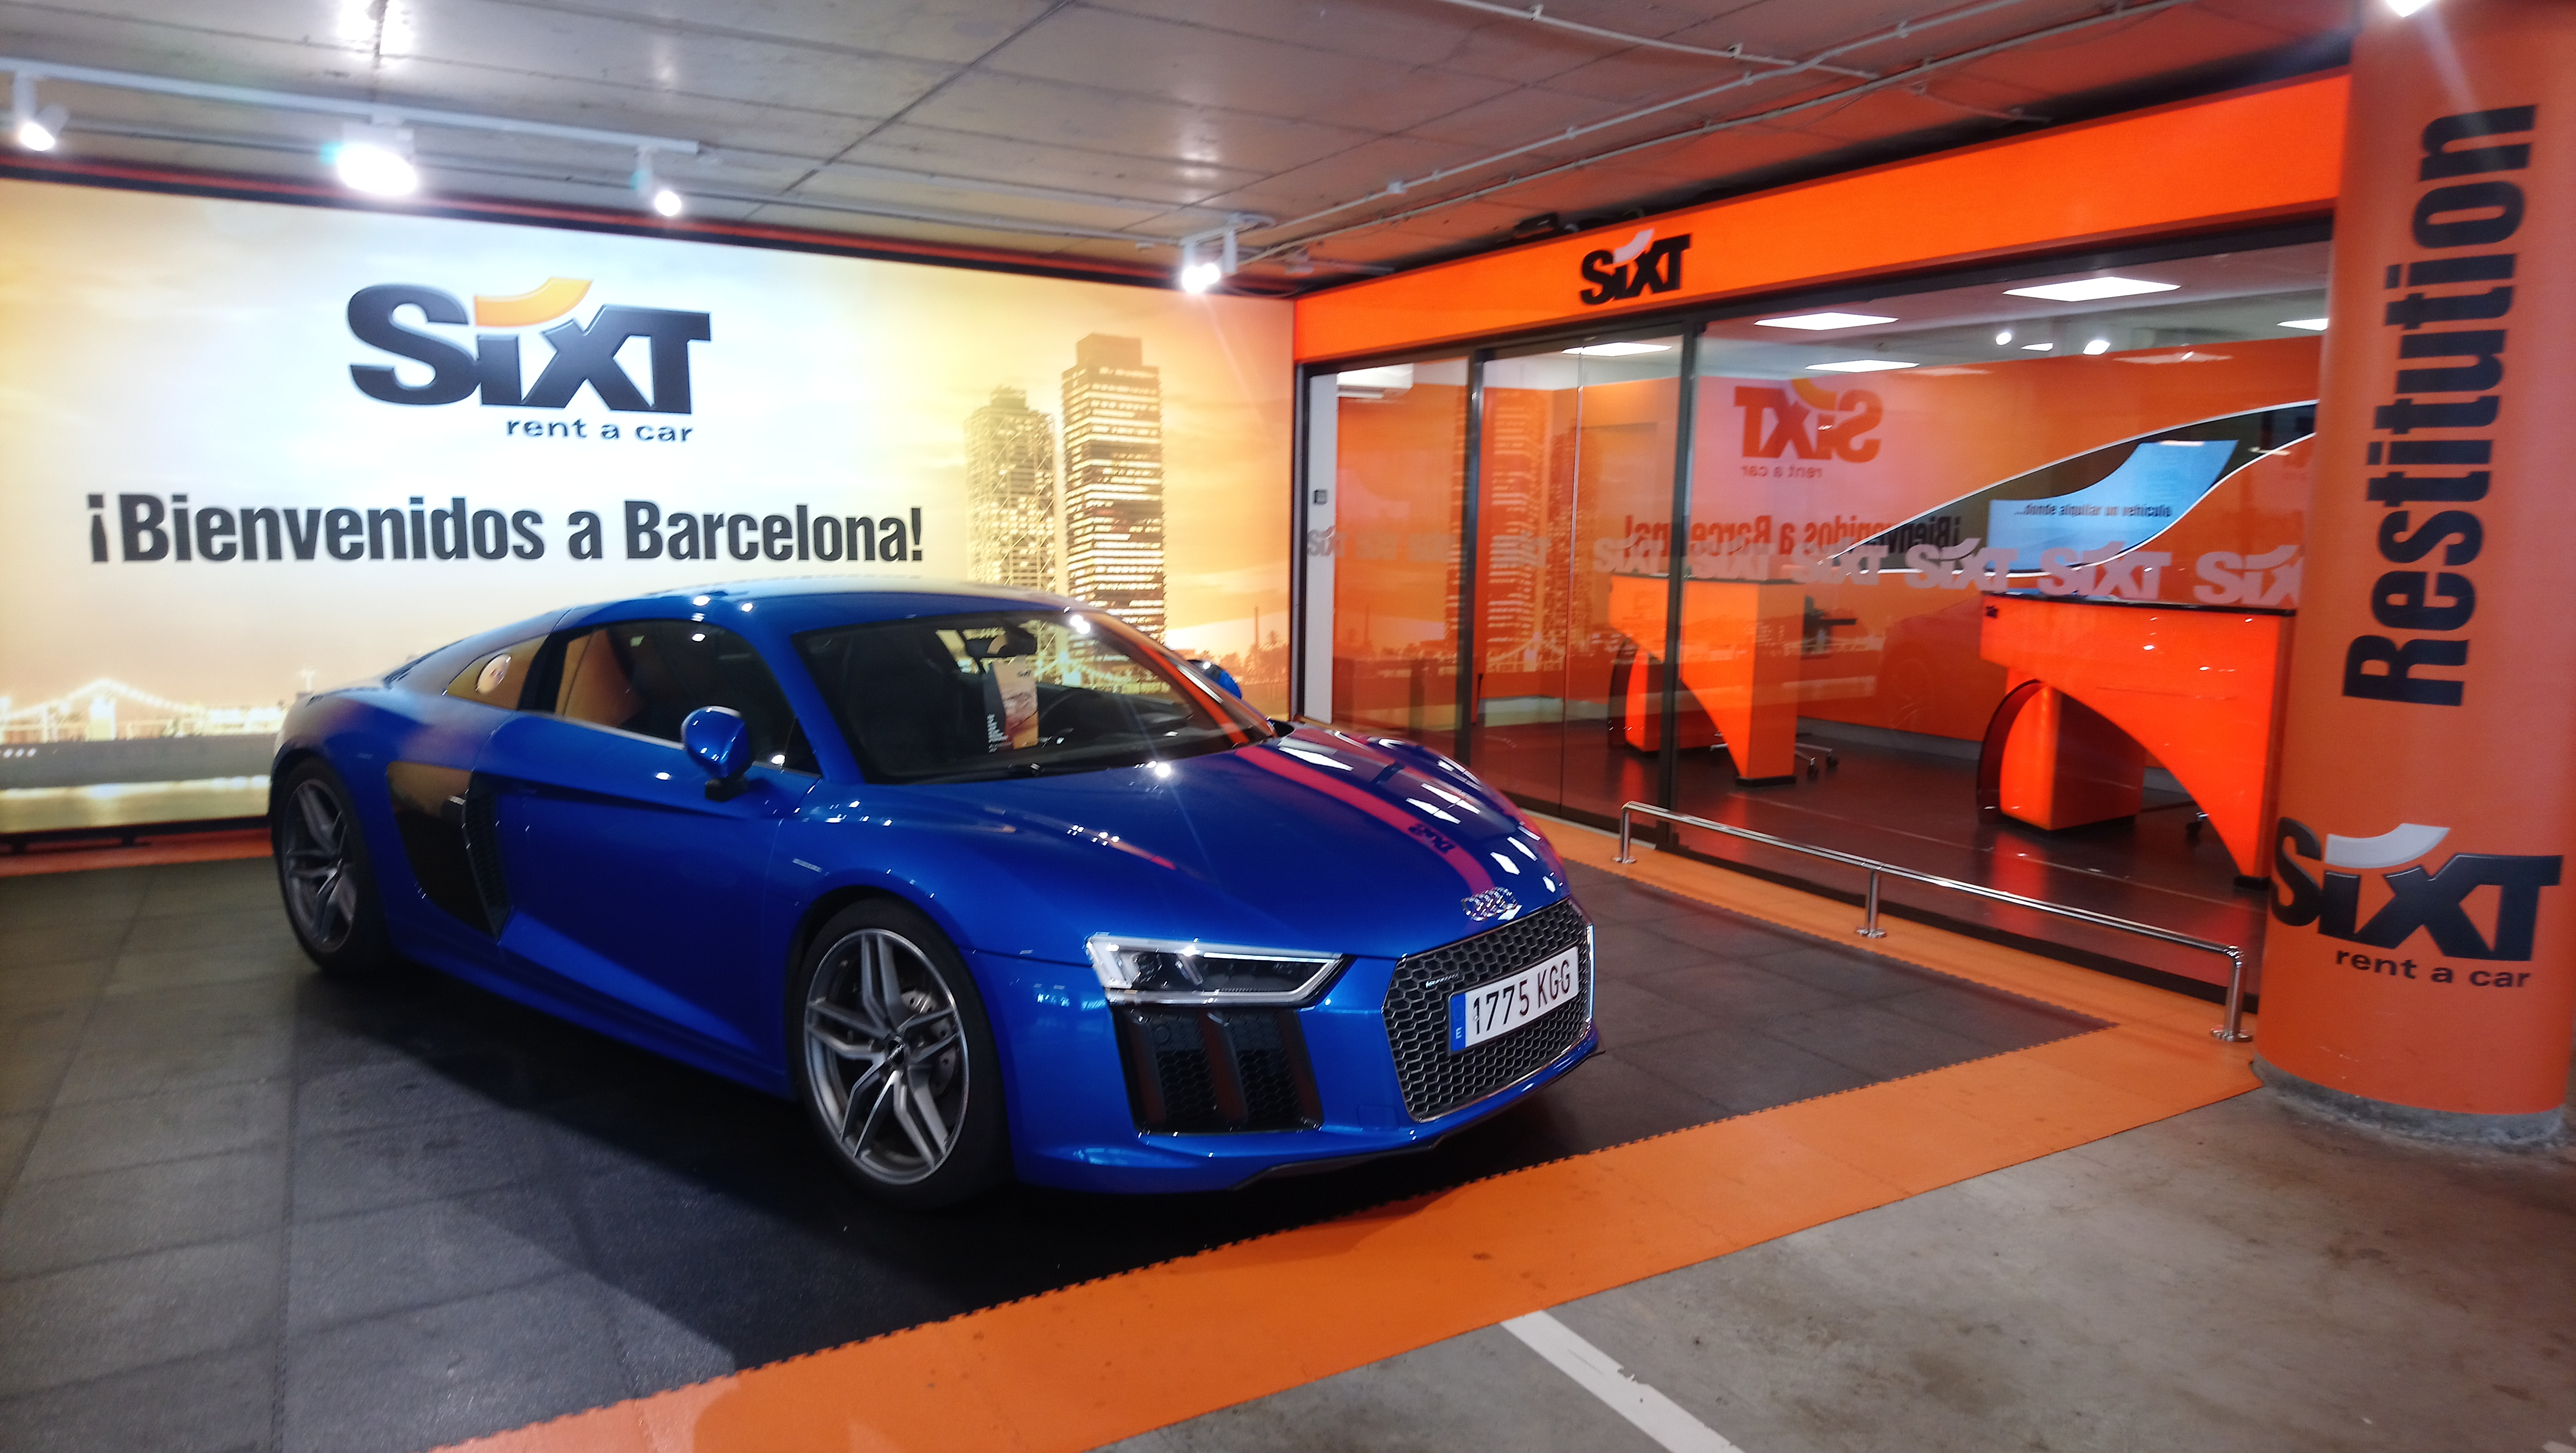 sixt t1 parking reforma 2